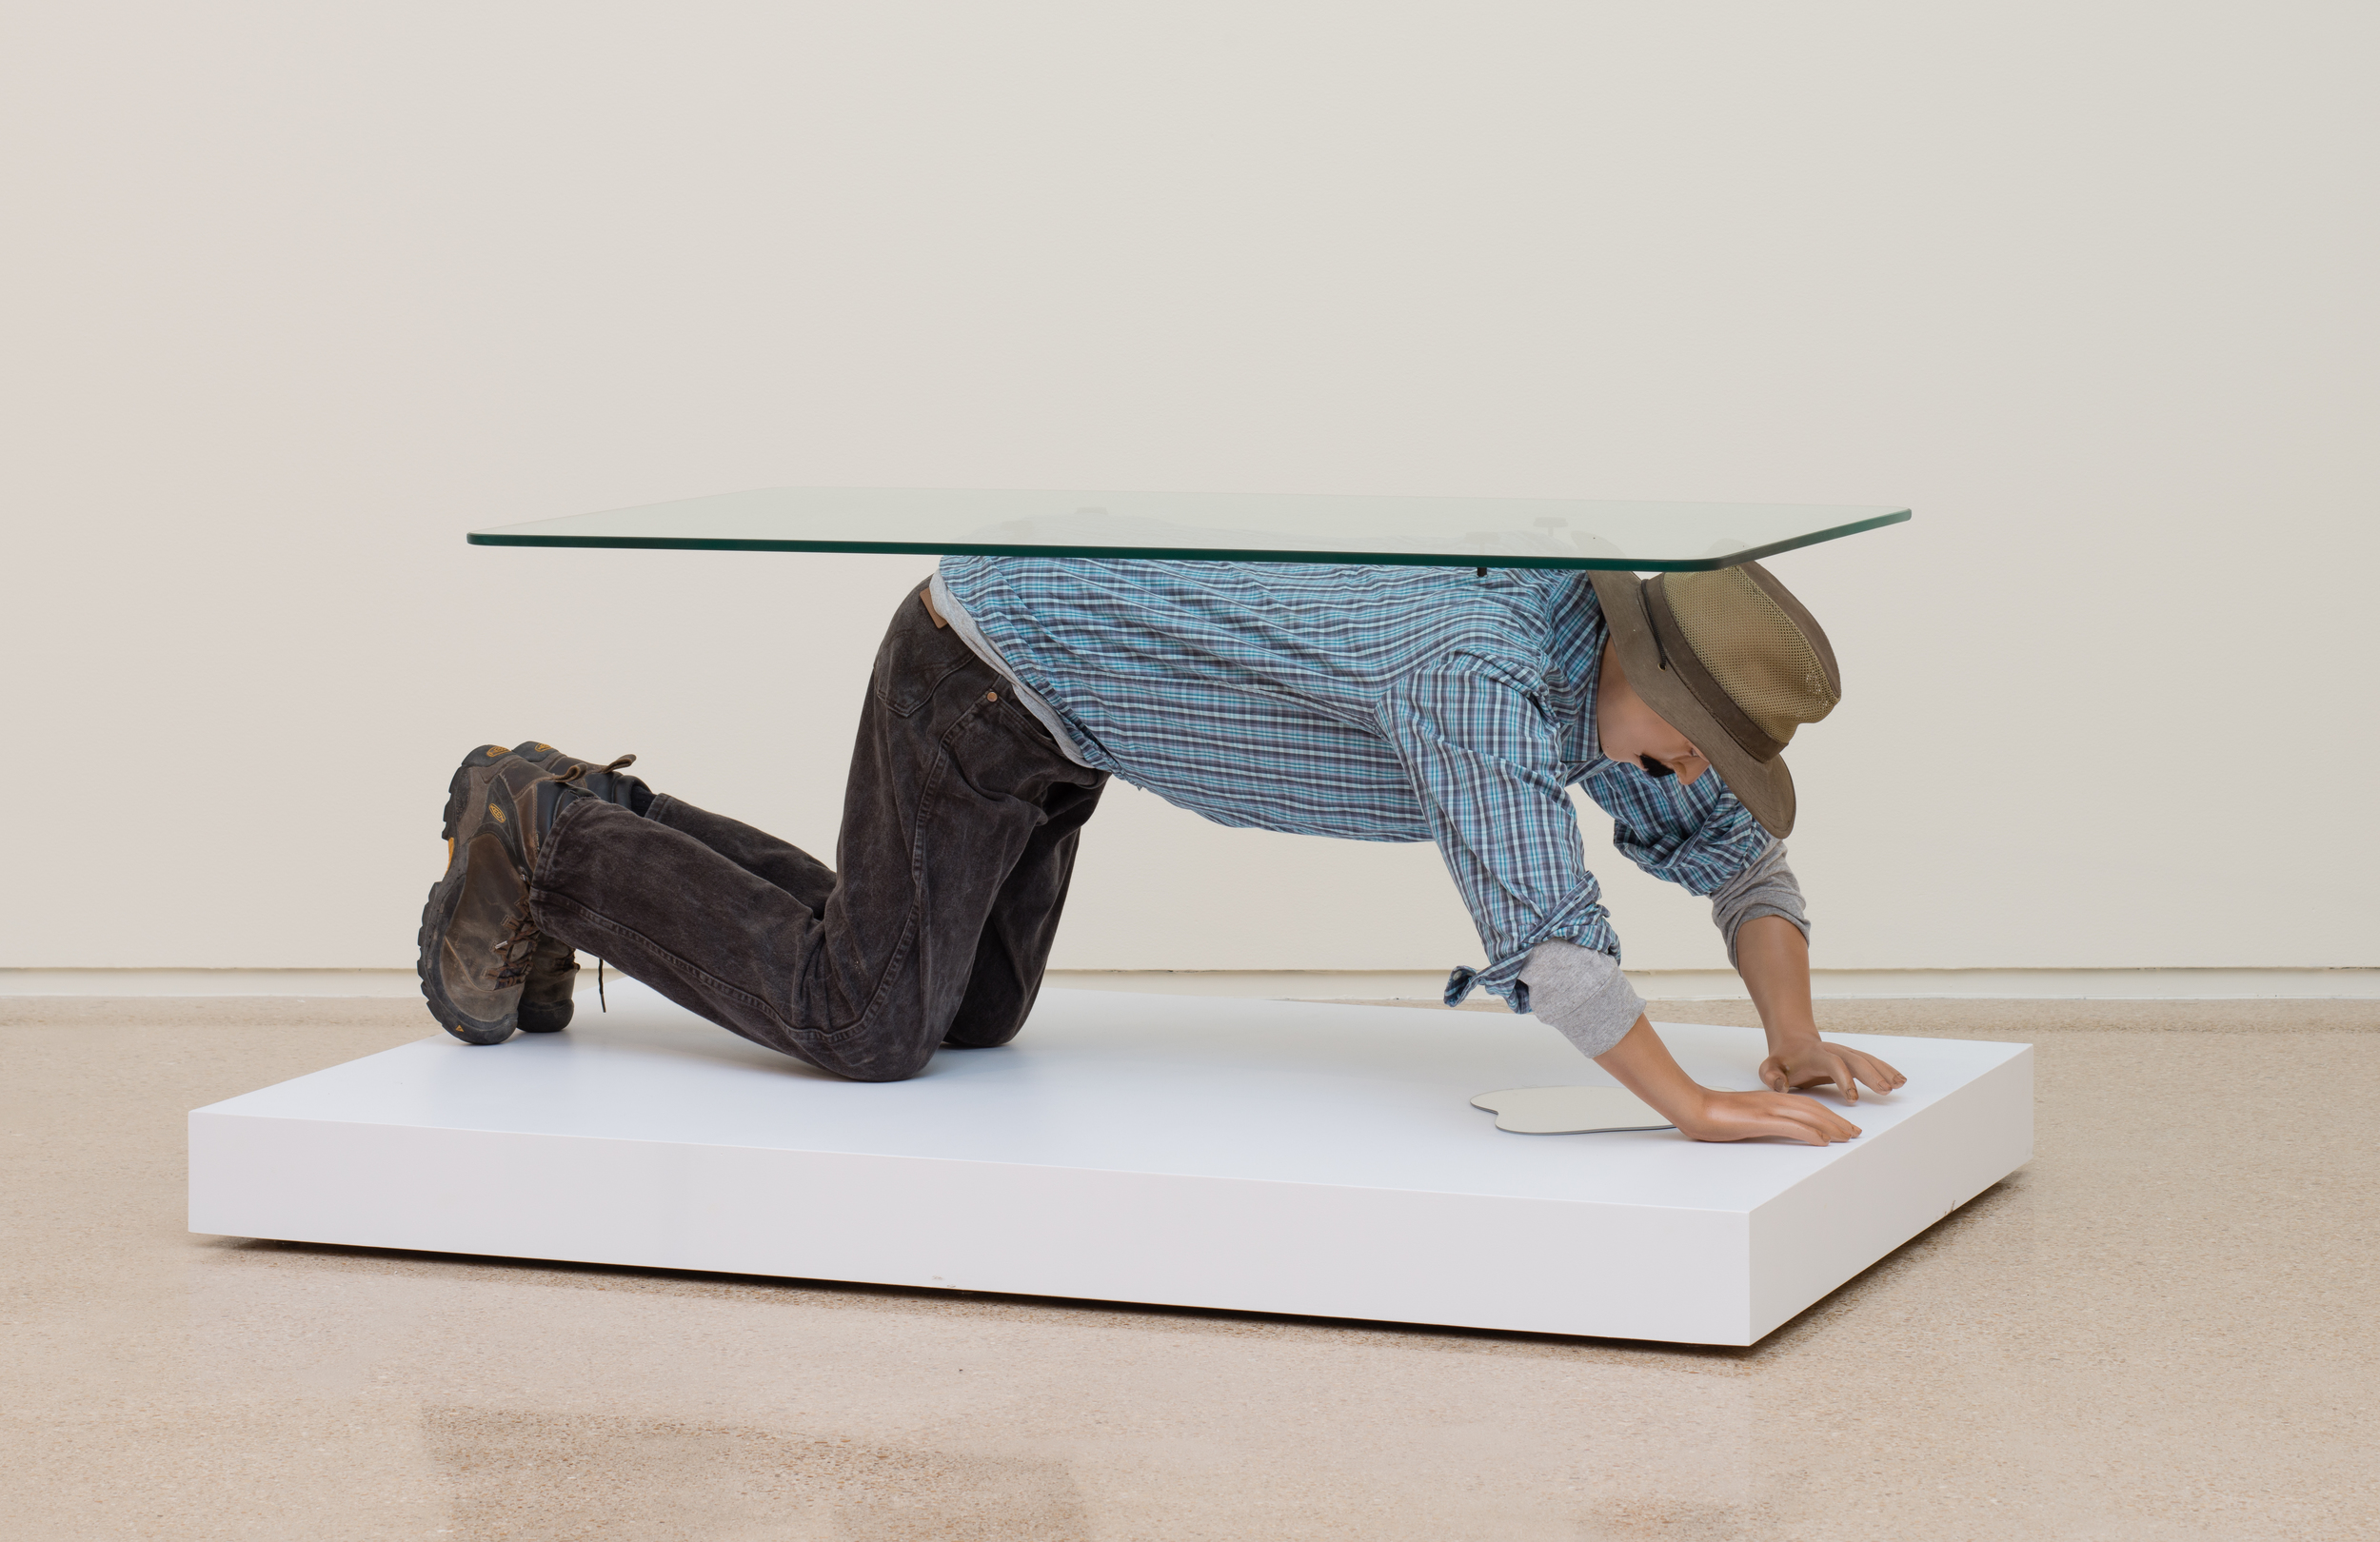 Alejandro Diaz  Muebles (Table),  2015 cast resin, paint, clothing, hair, and glass 62 x 32 x 21 in (157.48 x 81.28 x 53.34 cm)